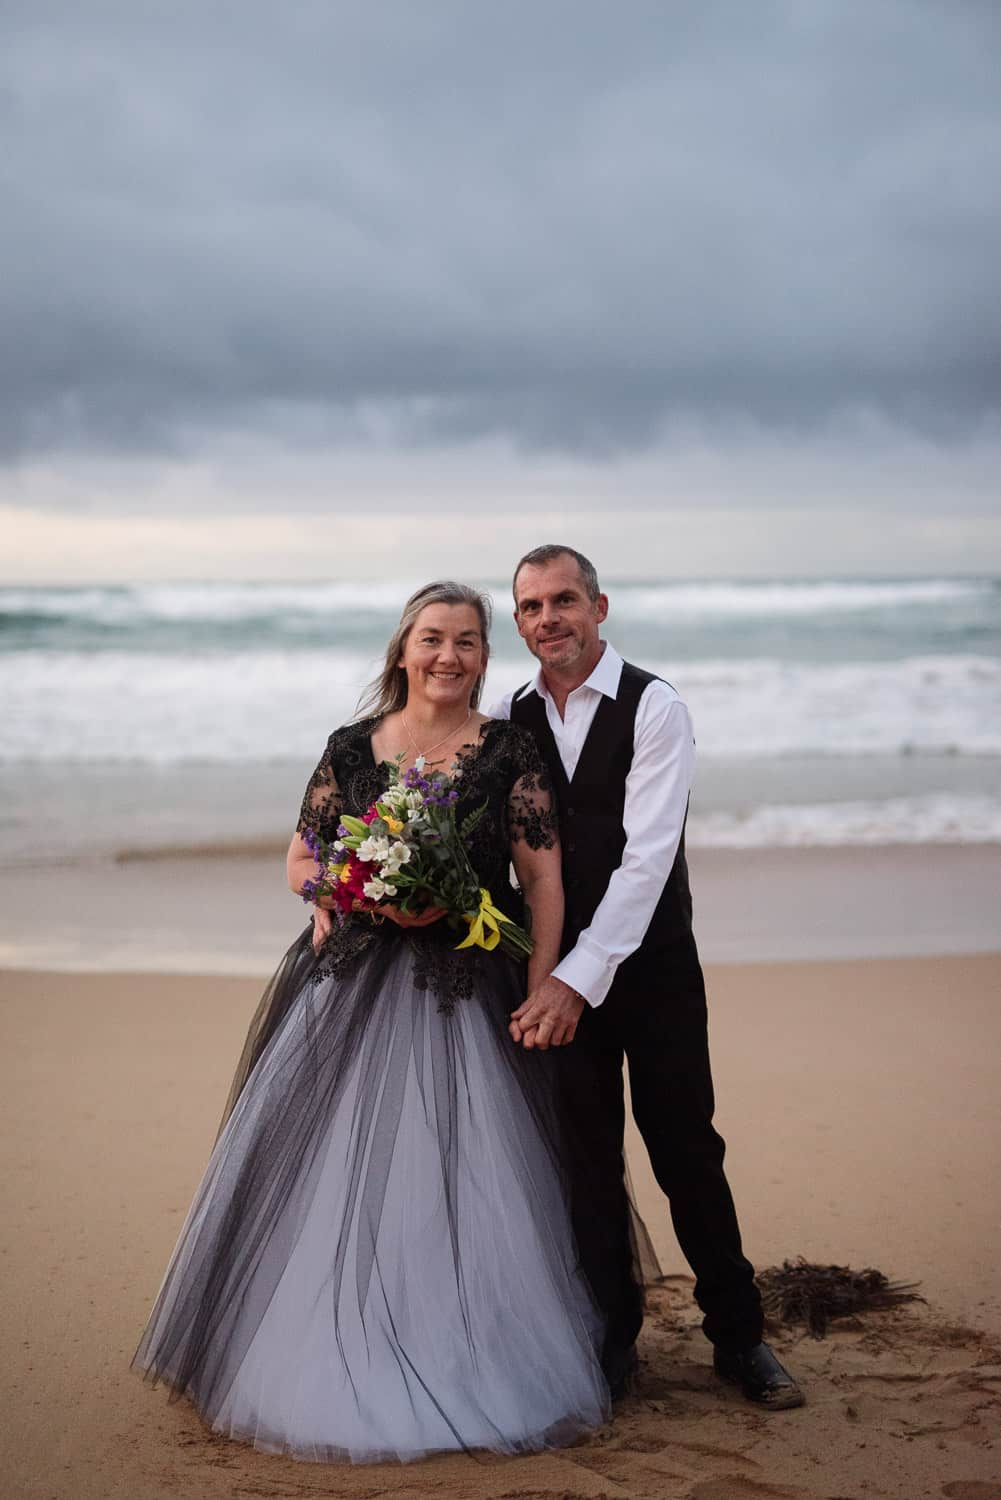 Bride and Groom smiling on the beach